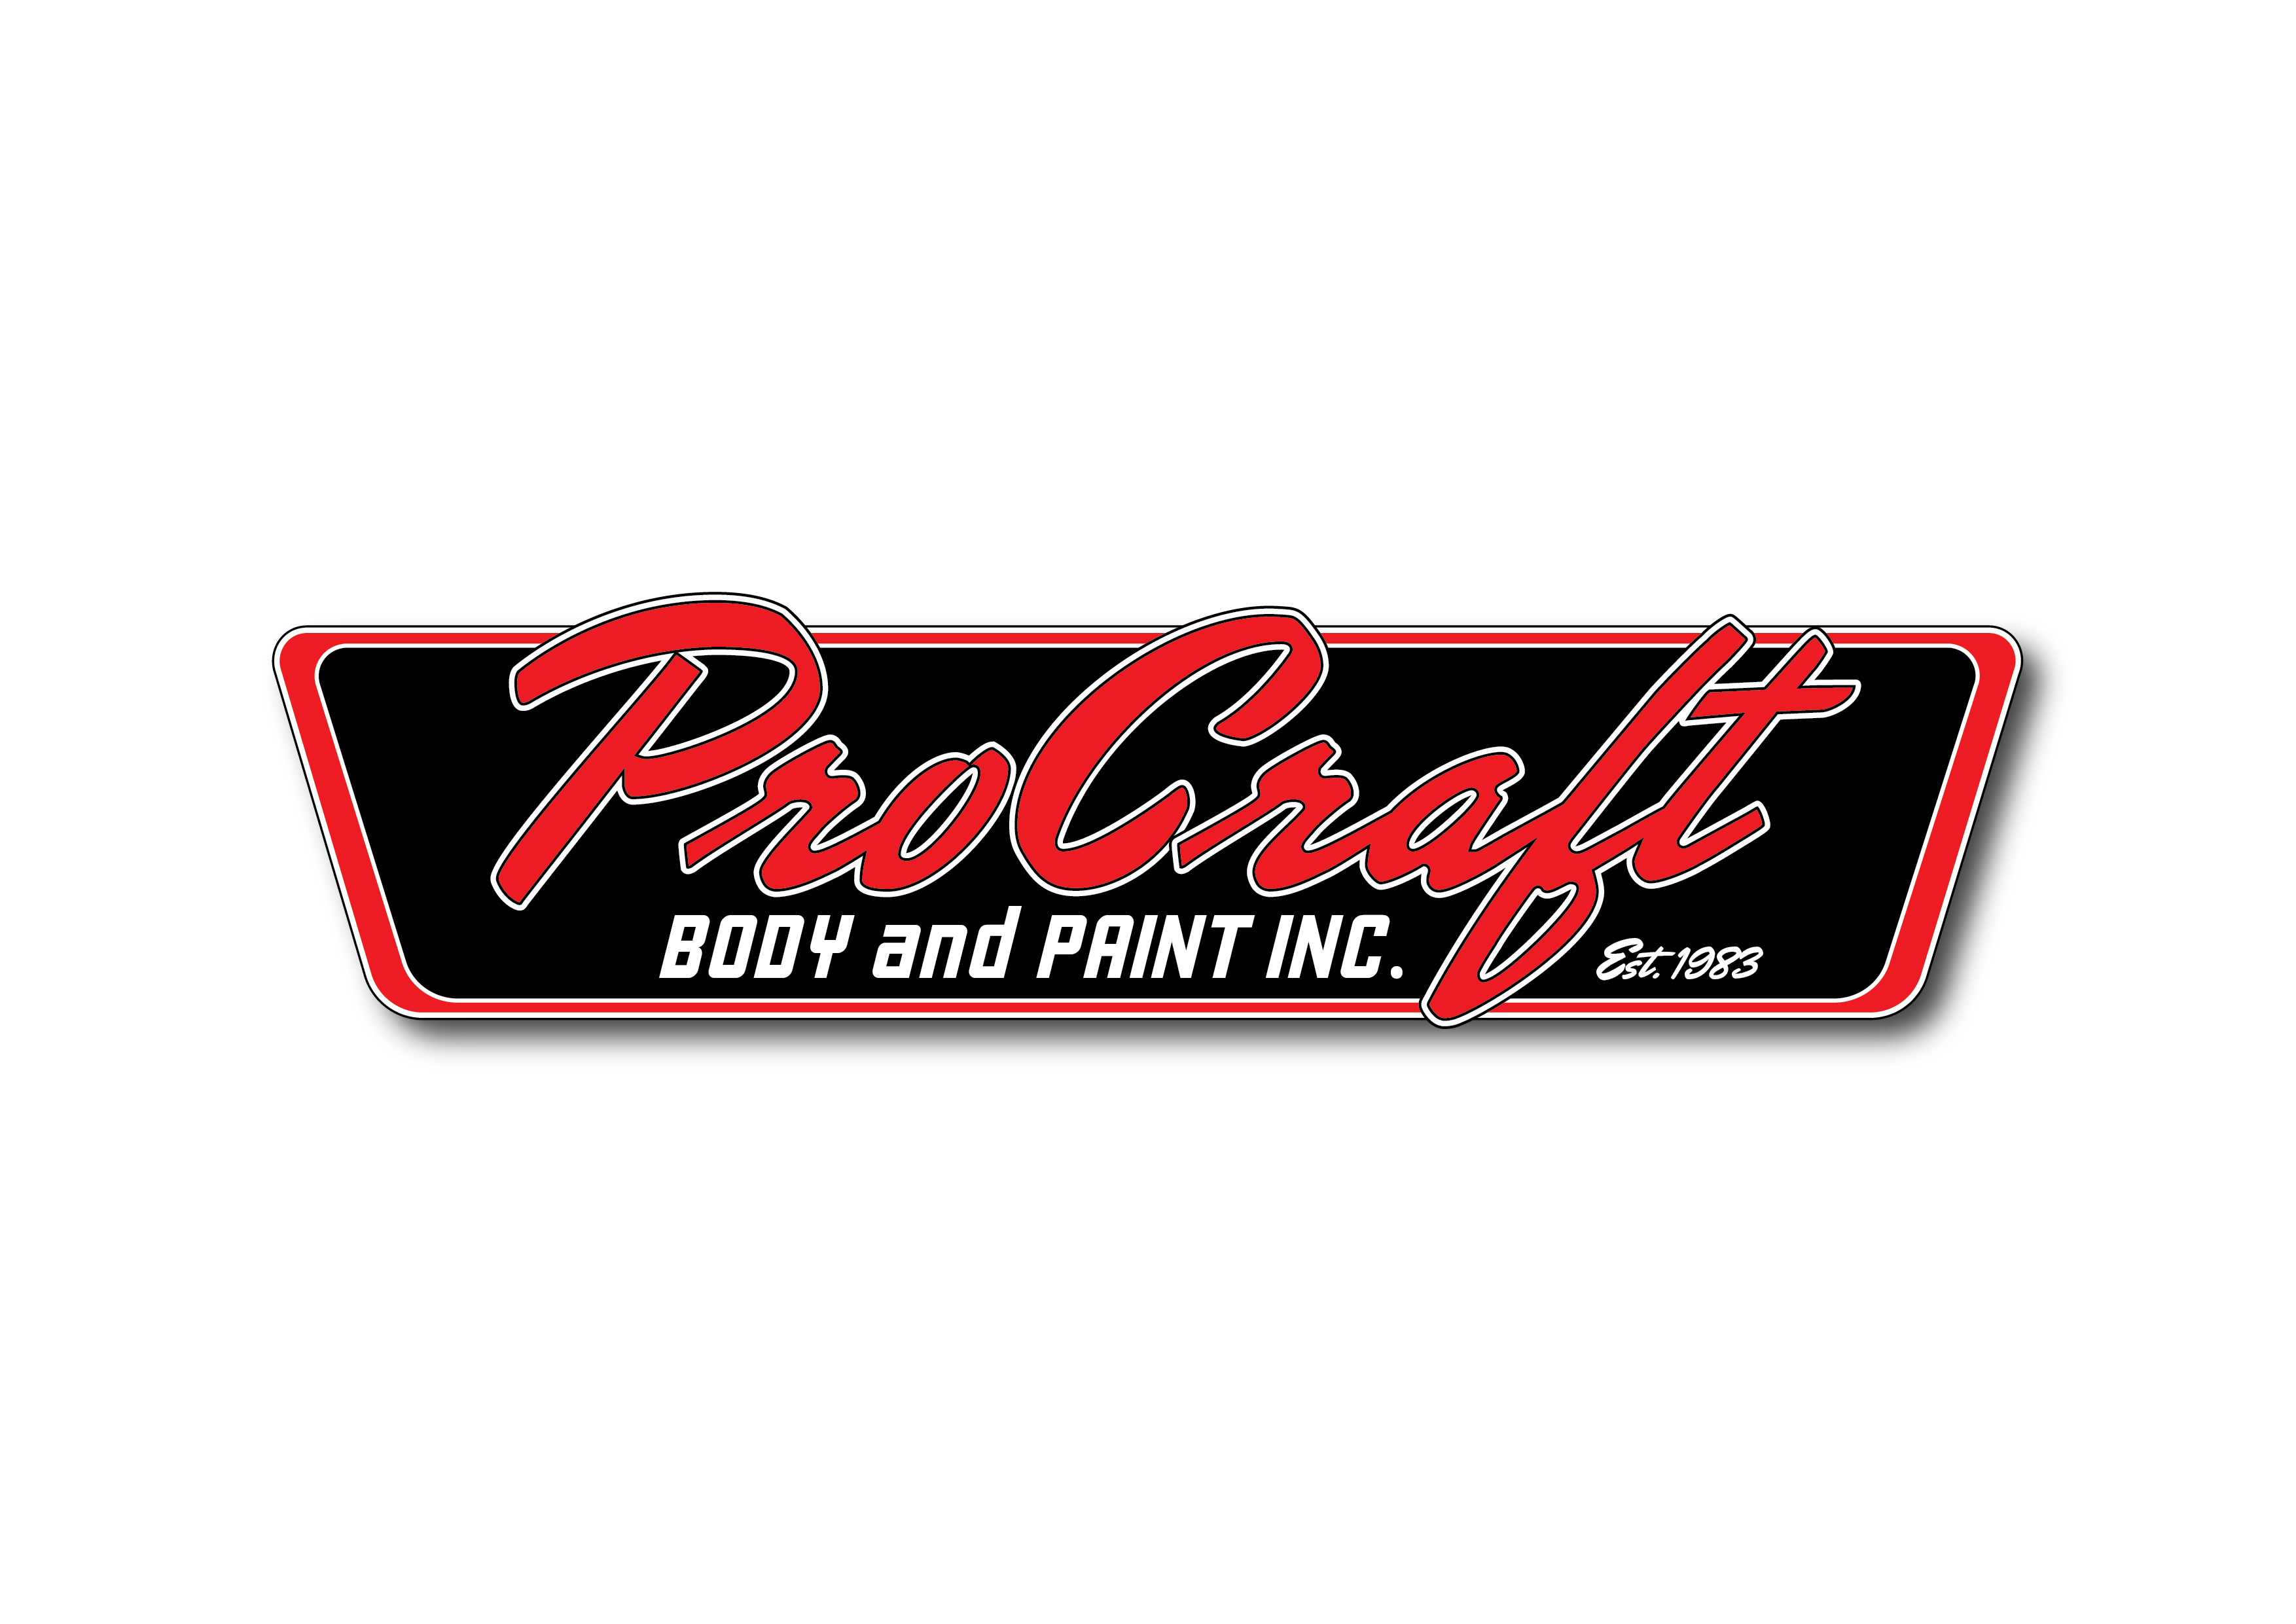 Procraft Body and Paint Inc